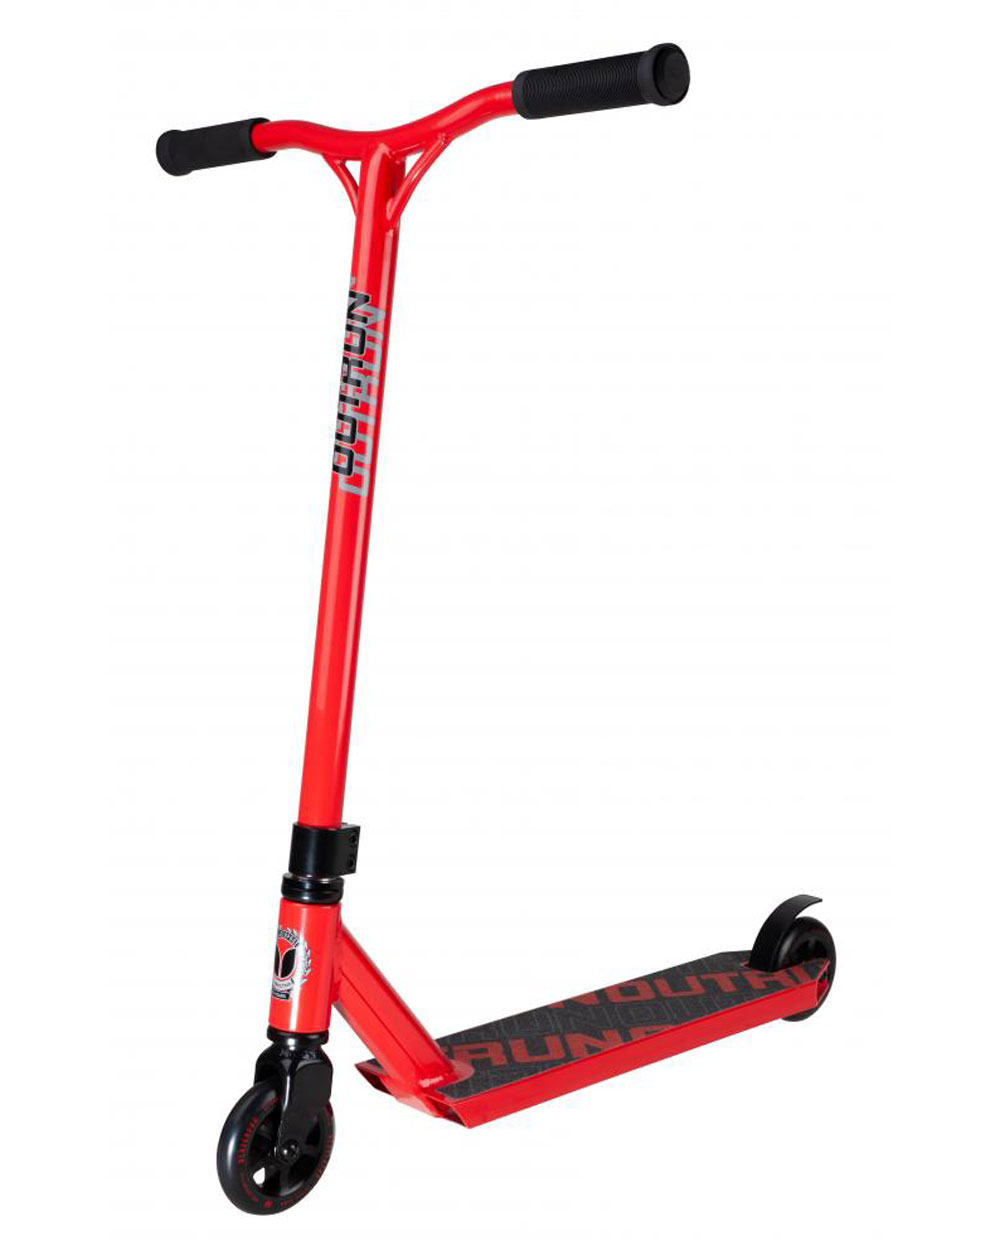 Blazer Pro Outrun 2 Stunt Scooter Red